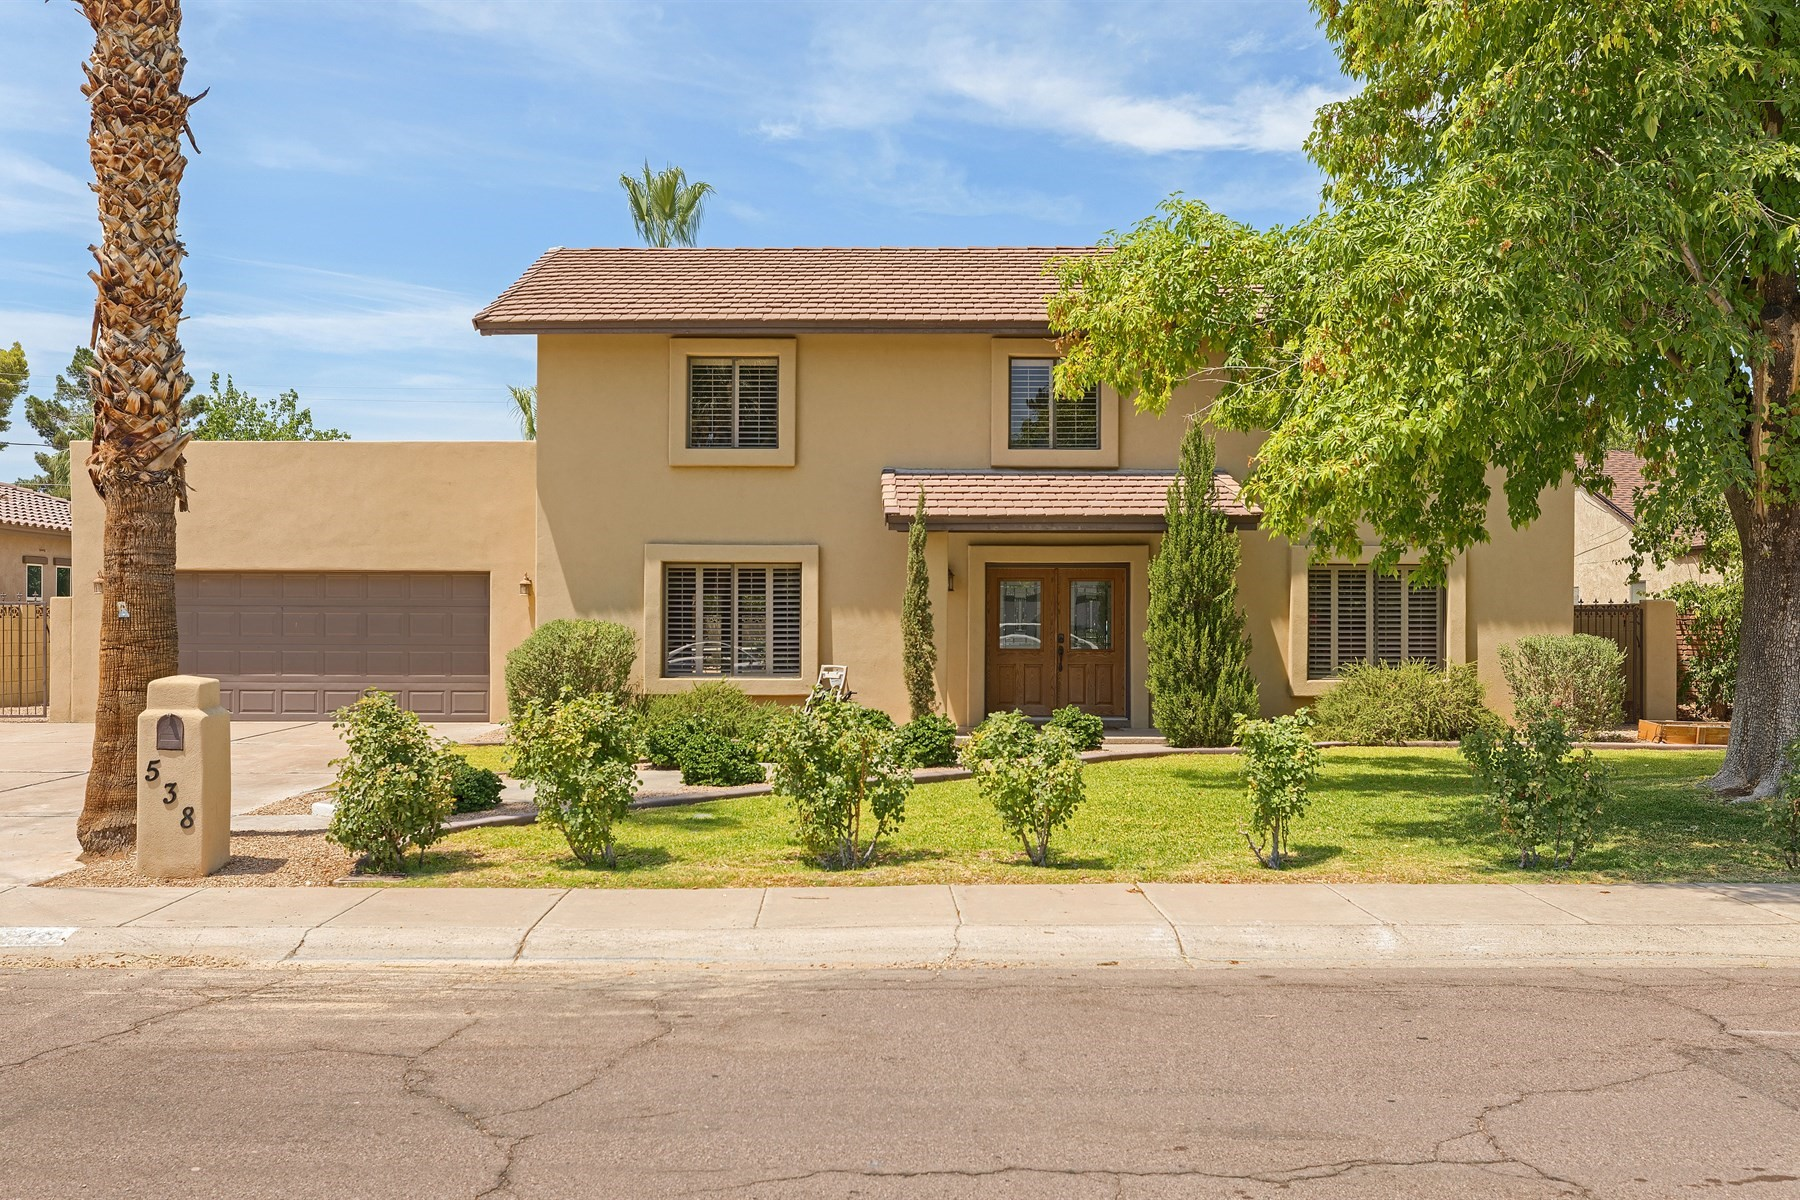 一戸建て のために 売買 アット Charming home in highly desired North Central Phoenix location 538 W Las Palmaritas Dr Phoenix, アリゾナ, 85021 アメリカ合衆国